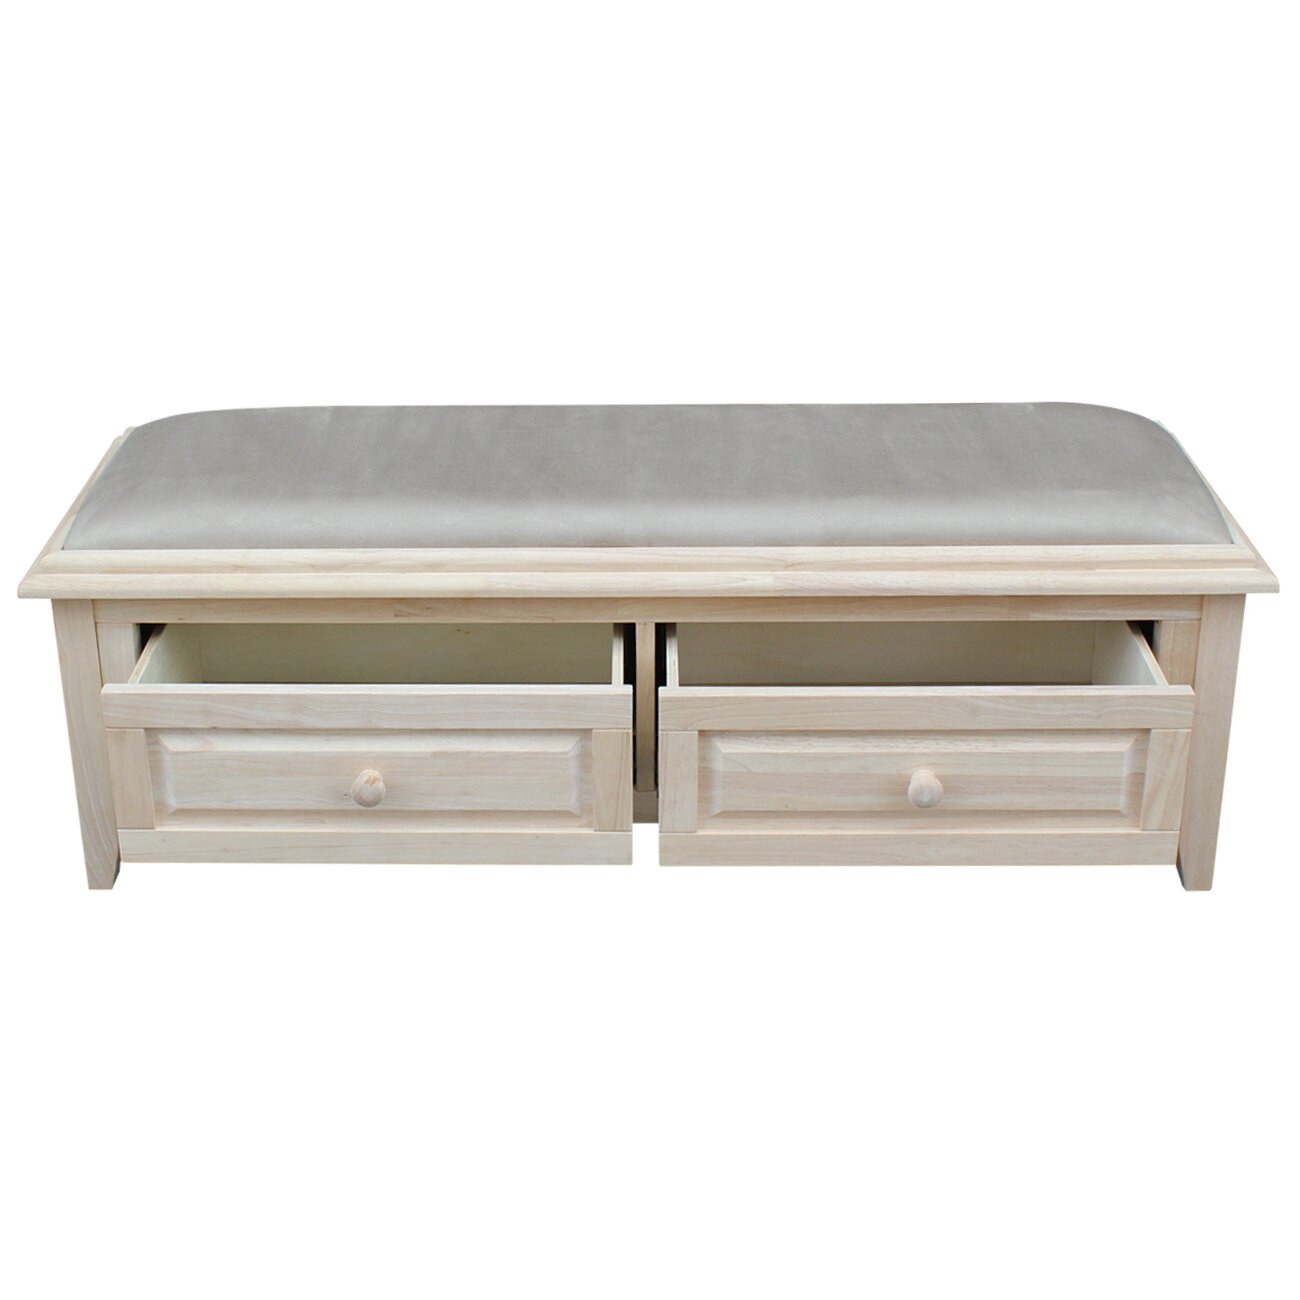 International Concepts Wood Storage Entryway Bench & Reviews  Wayfair ...